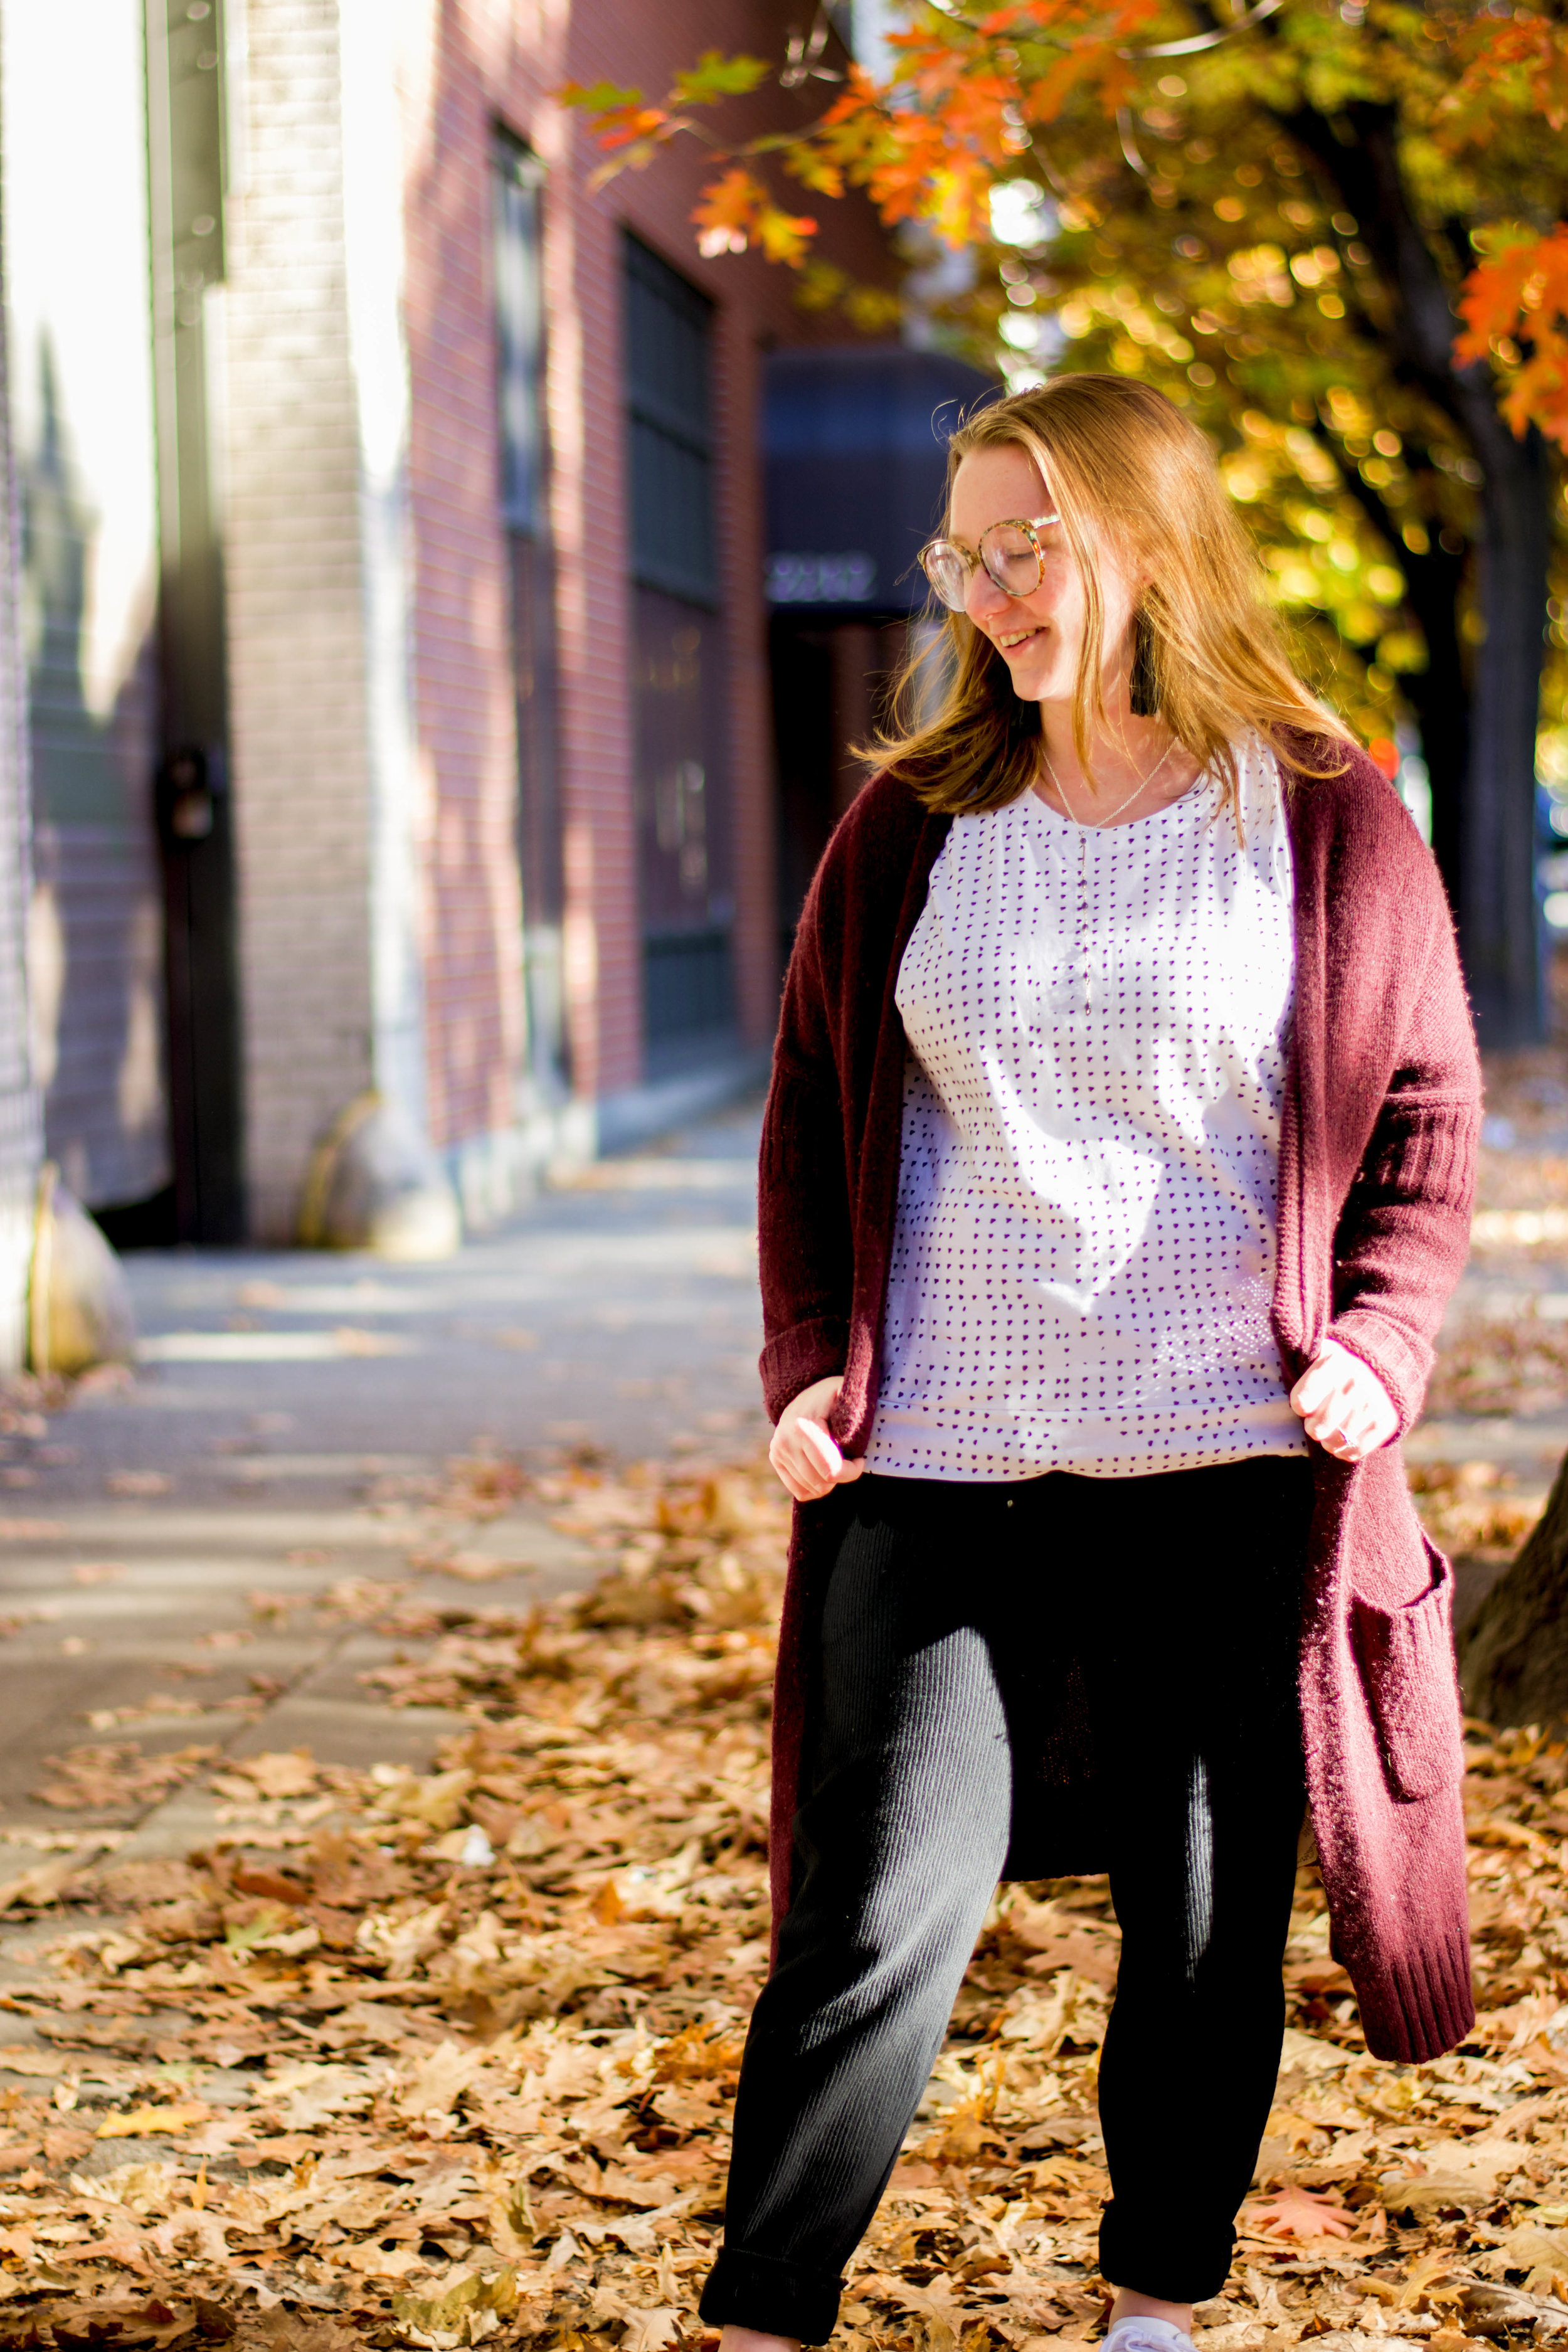 Affordable ethical clothing